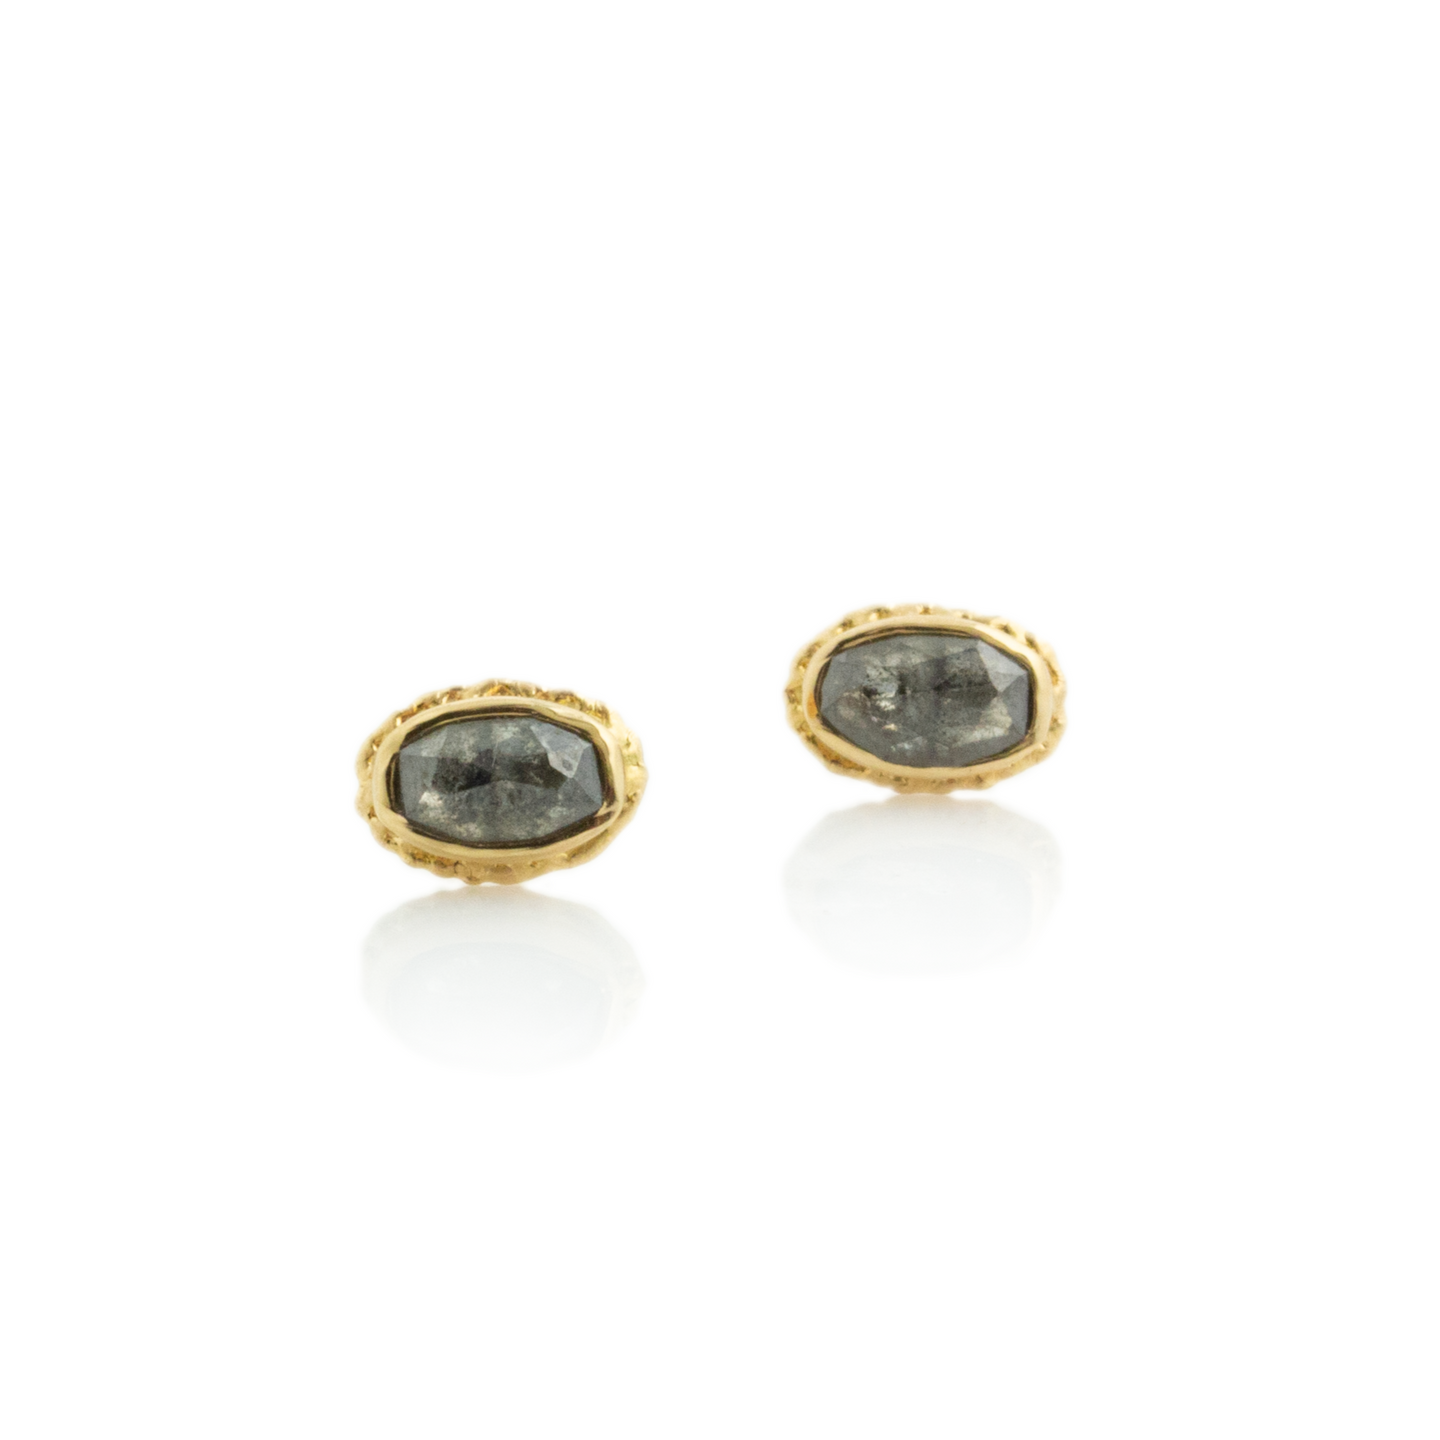 1.05 tcw Oval Salt & Pepper Rustic Diamond Post Earrings